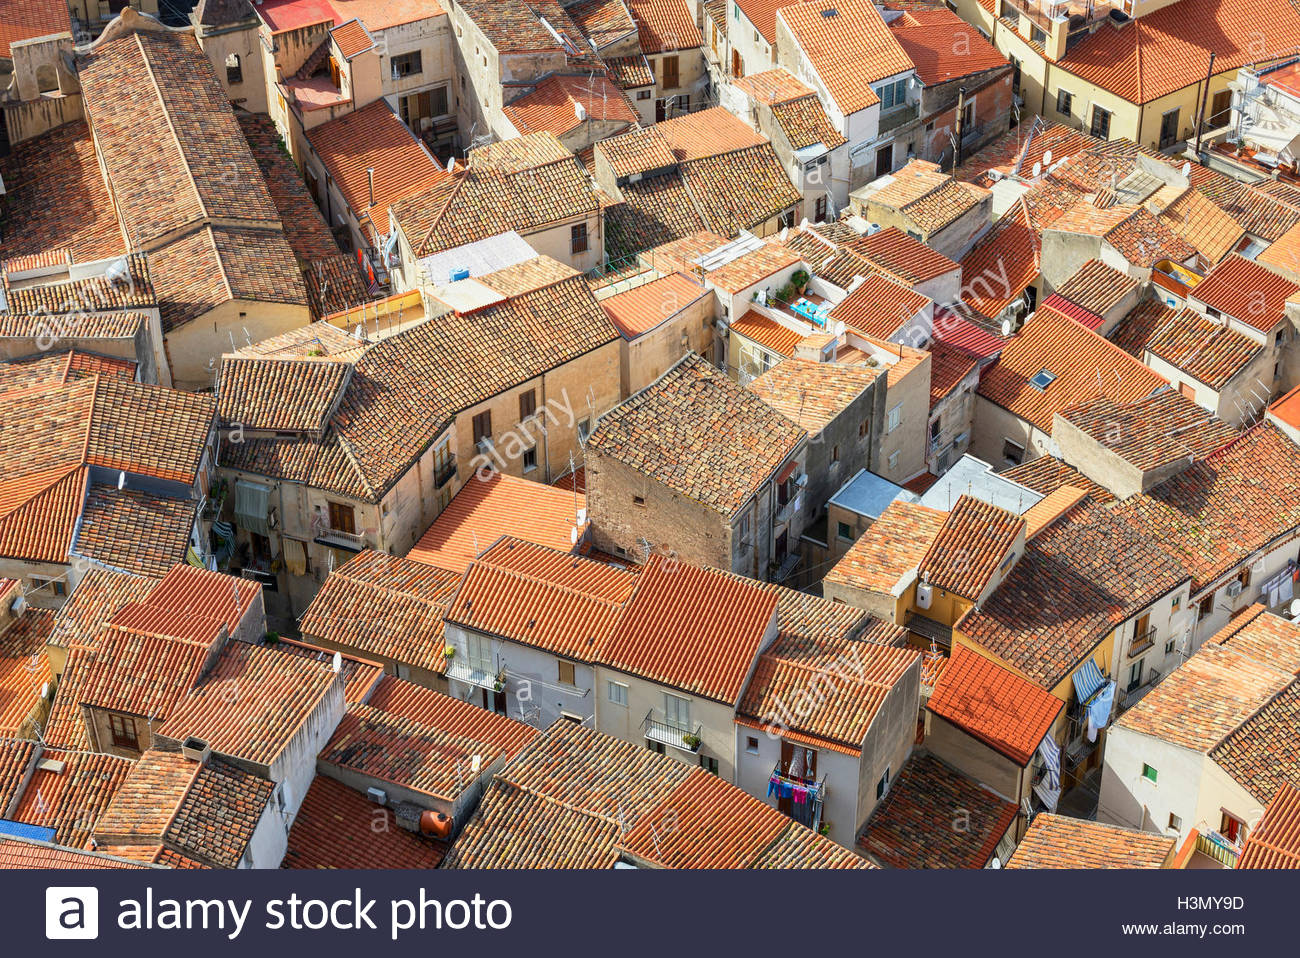 High angle view of Cefalu terracotta rooftops from La Rocca, Sicily, Italy - Stock Image